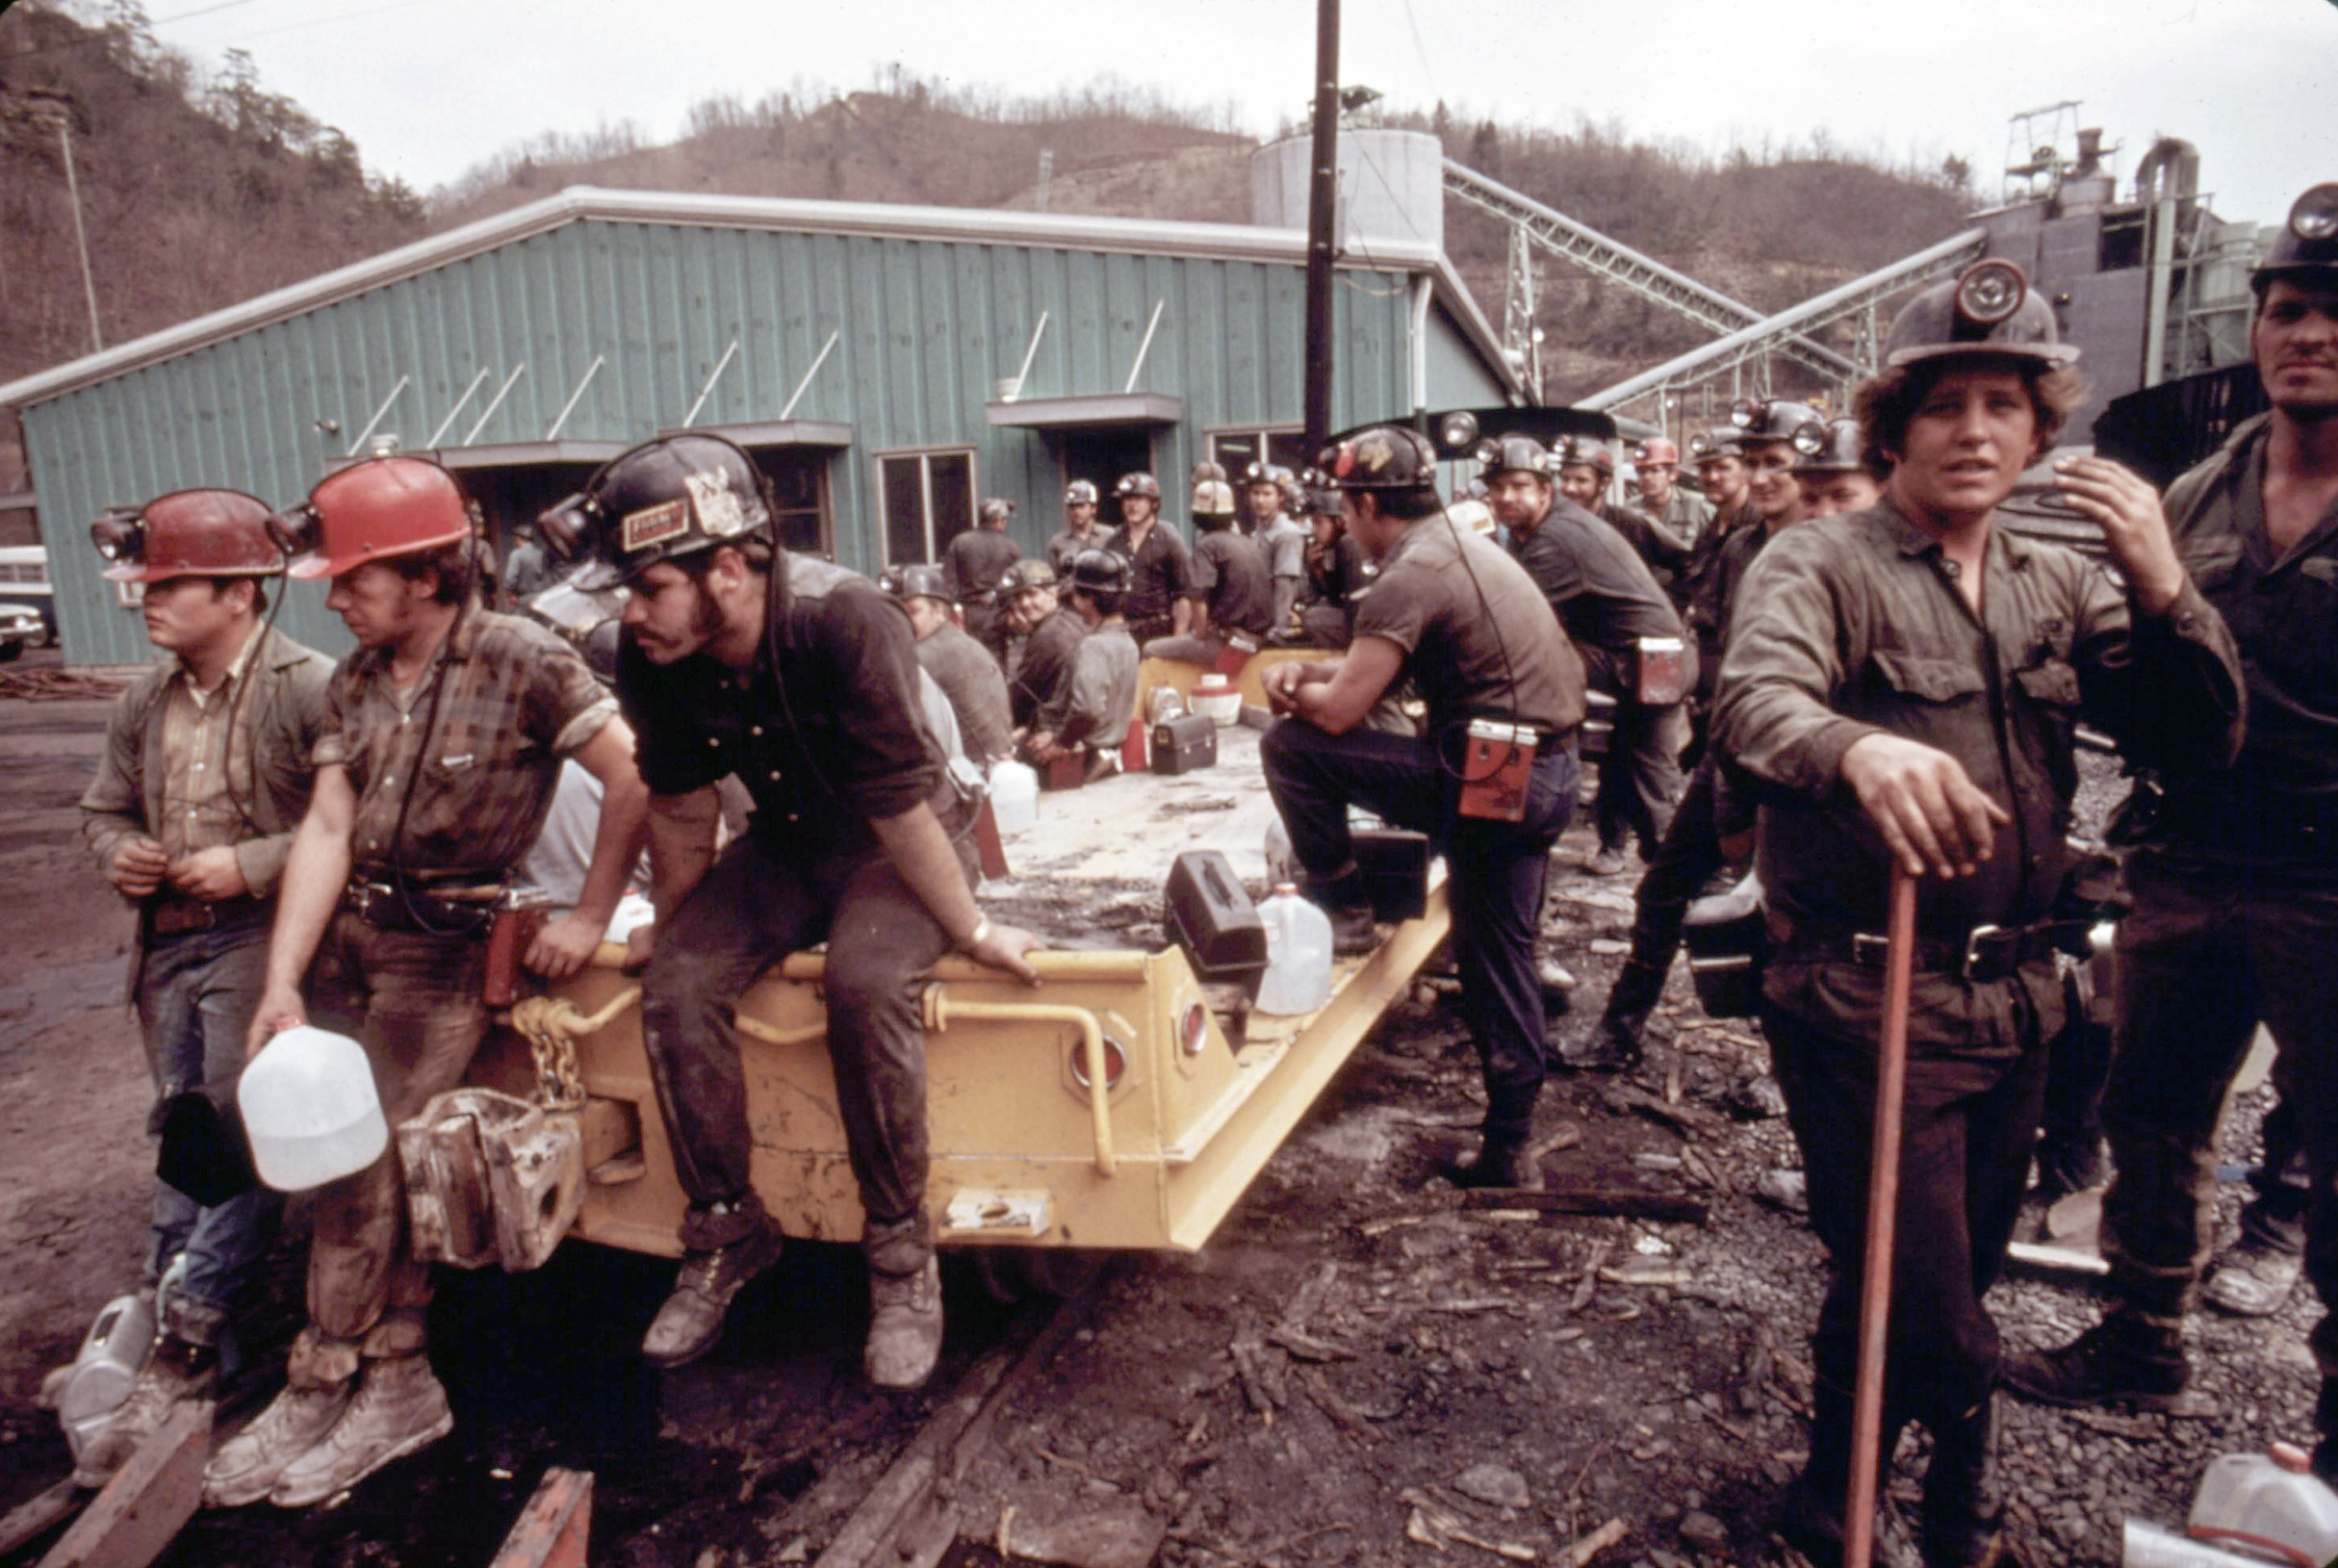 The deep imagery of coal mining in the 1970s shows a lifestyle of